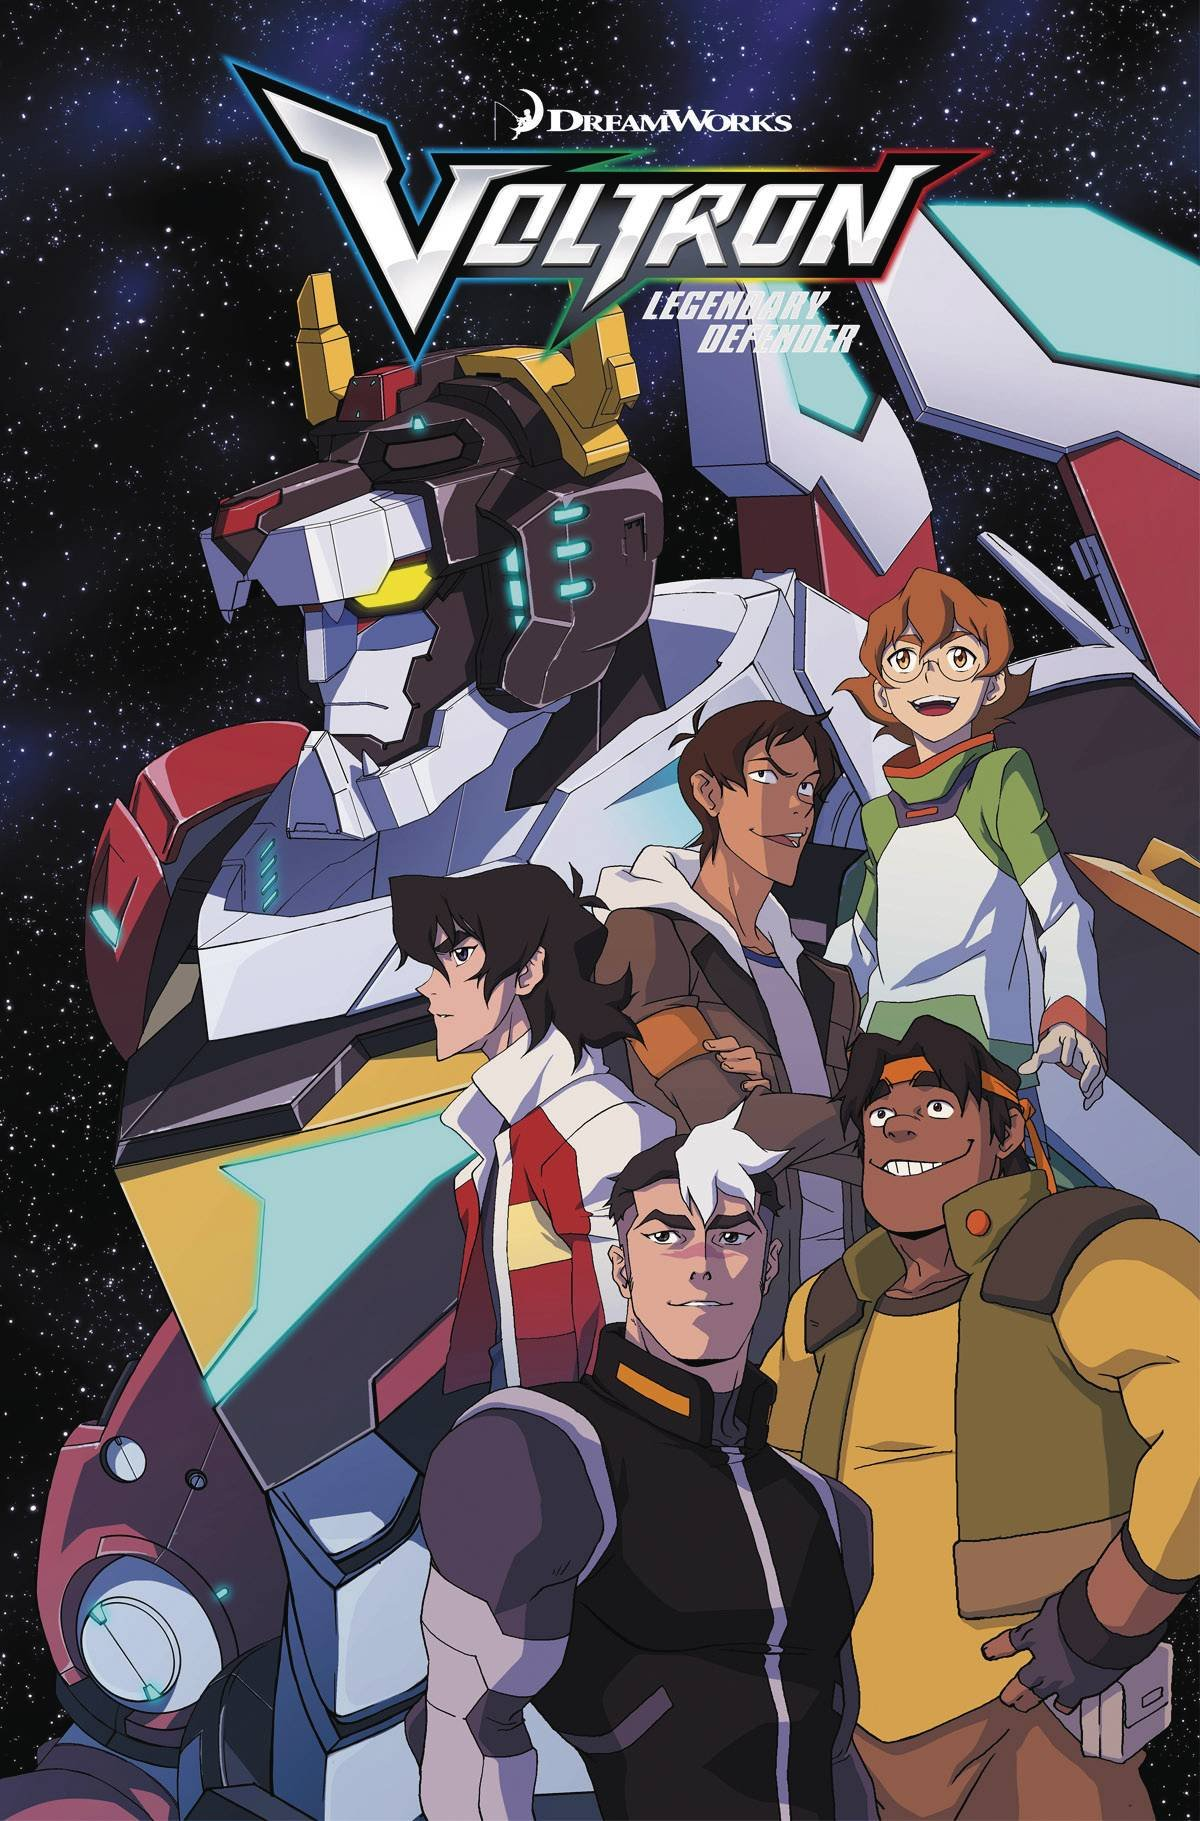 Voltron Iphone Wallpaper Posted By Michelle Tremblay